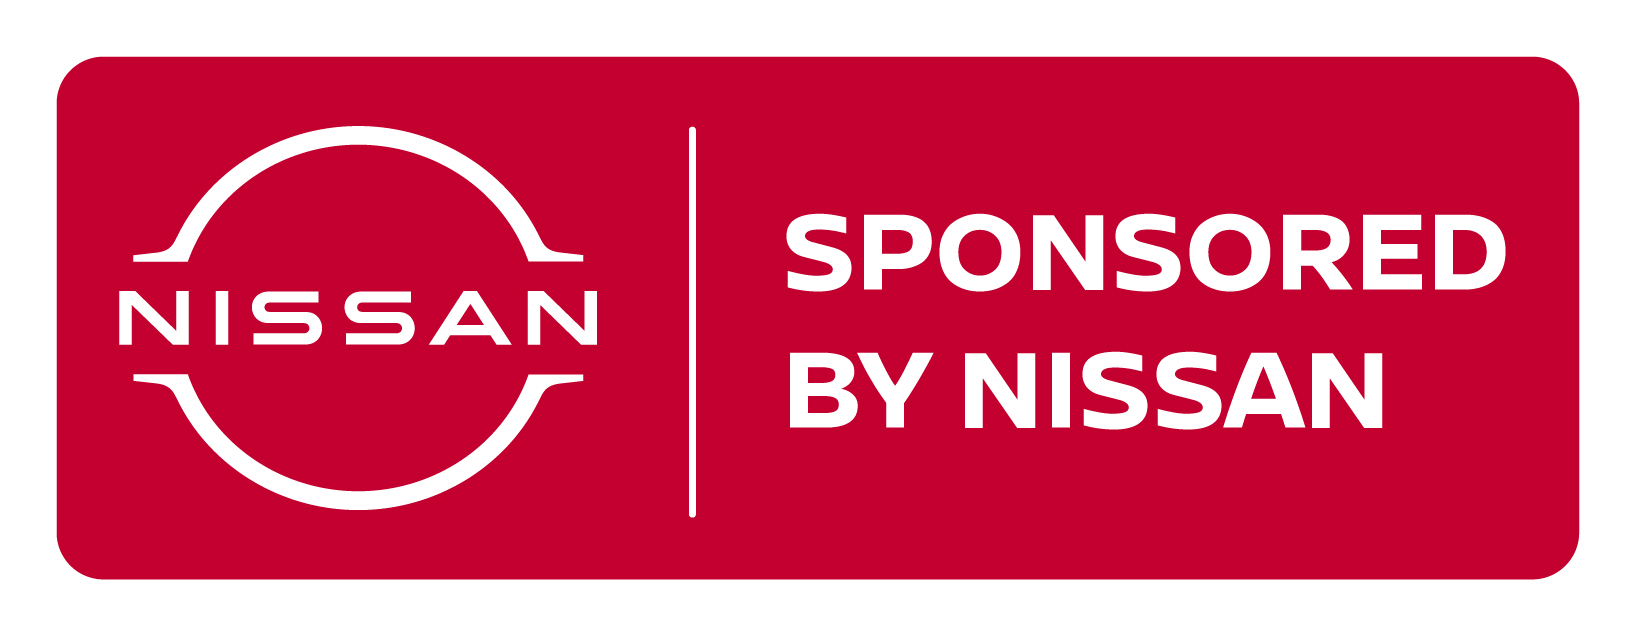 Sponsored By Nissan